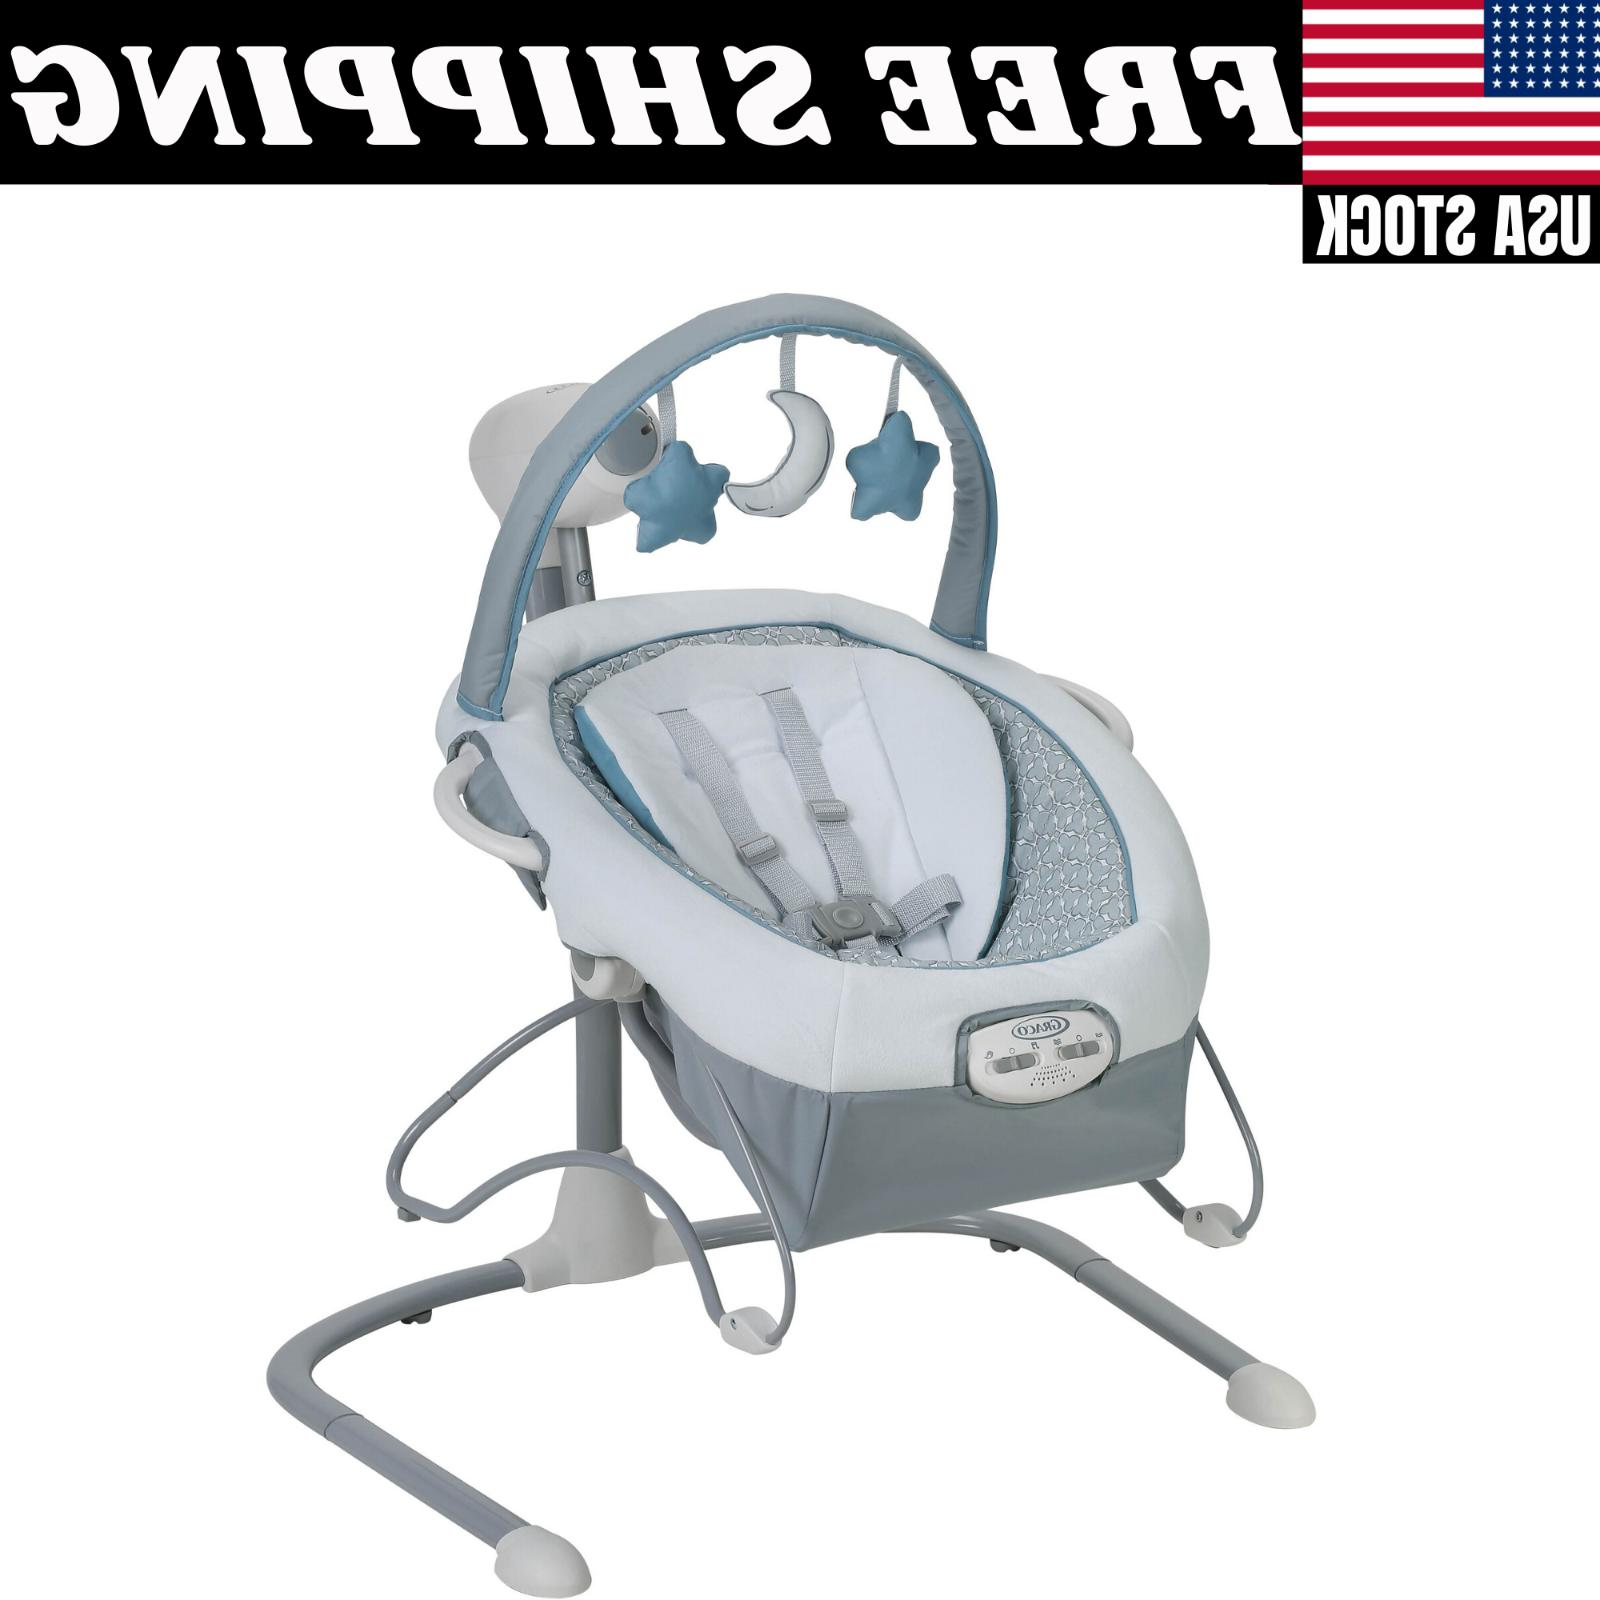 Graco Sway LX Baby Swing Portable Adjustable Toybar